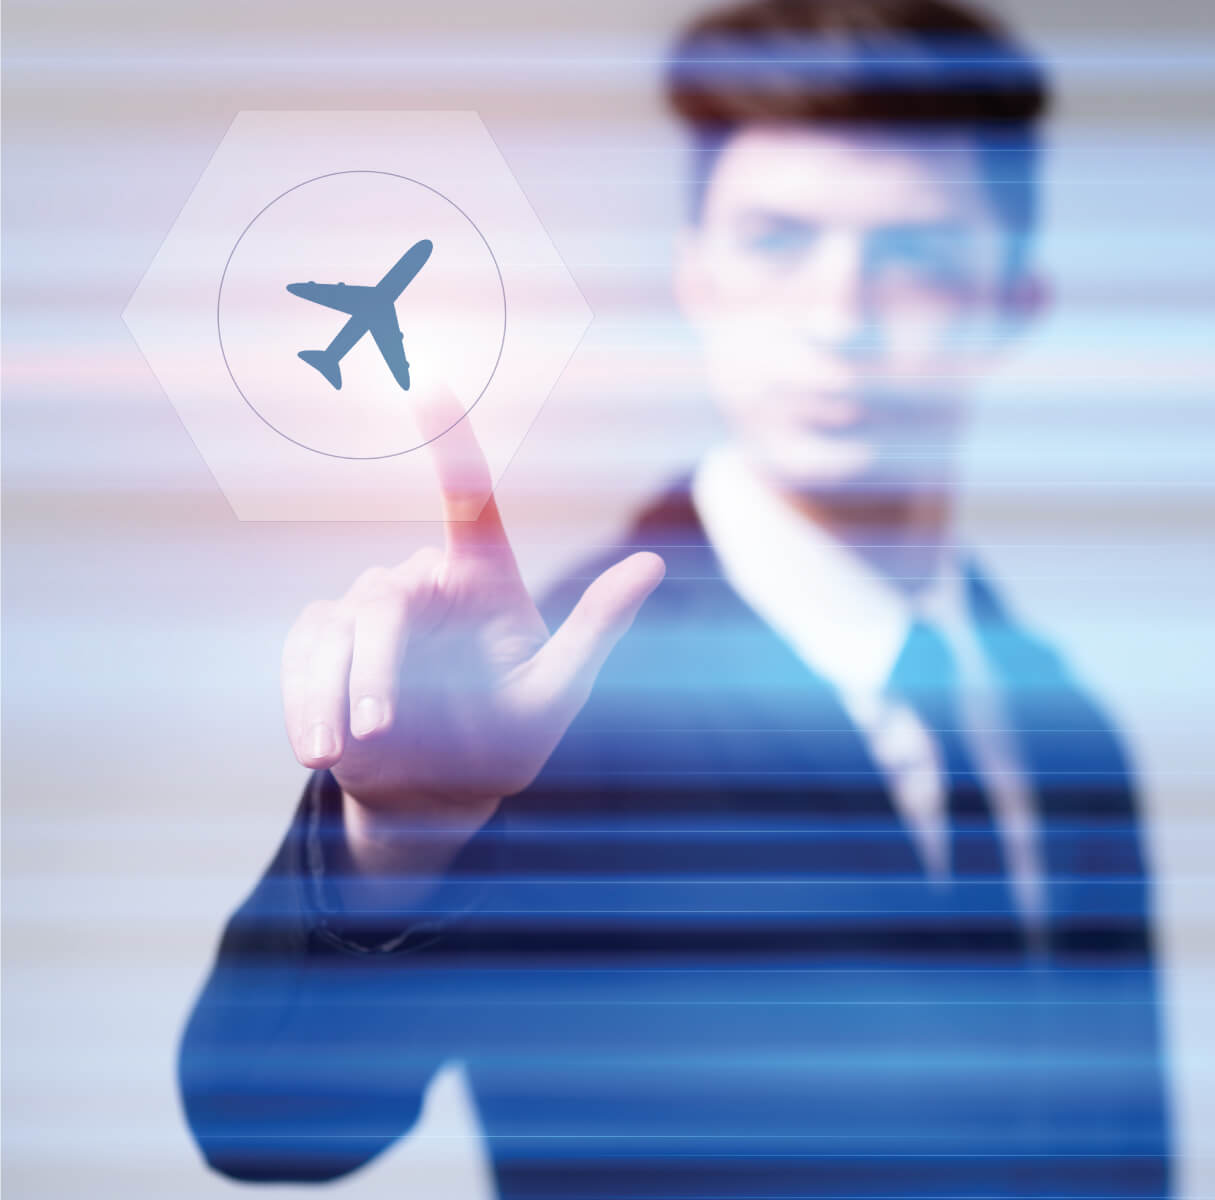 The Next-Gen Airline System for Customer Experience Transformation